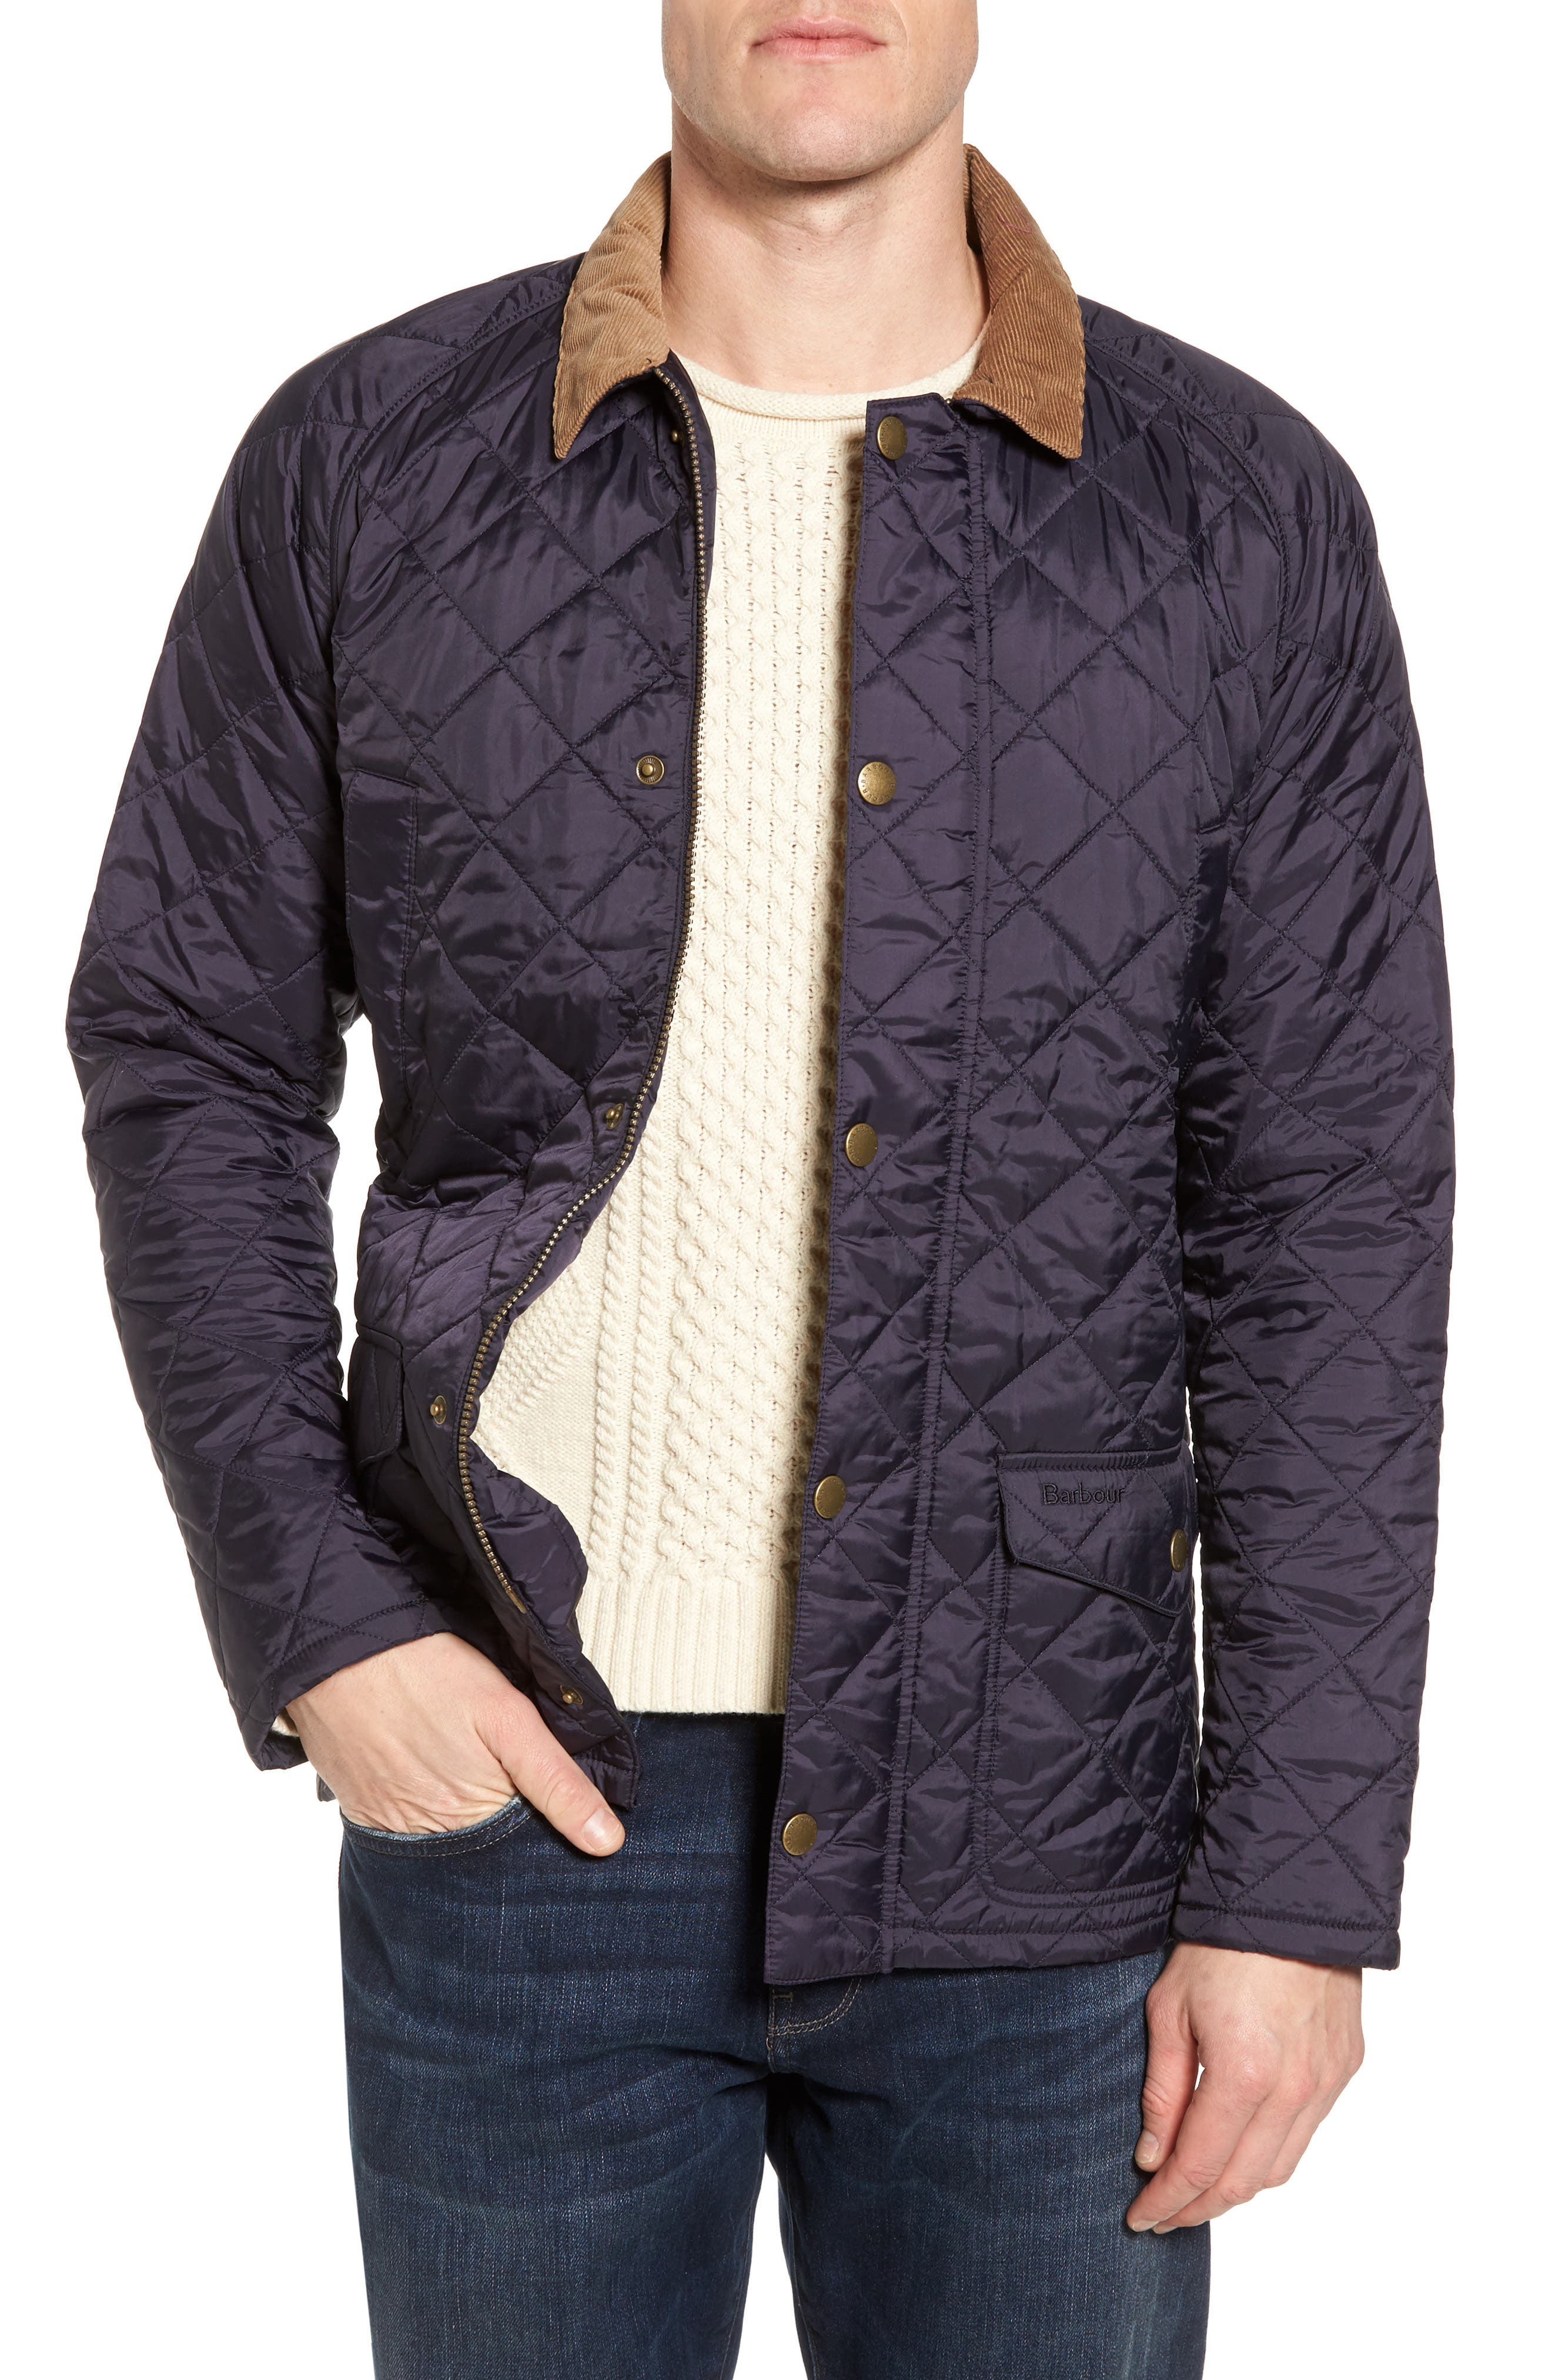 Alternate Image 1 Selected - Barbour 'Canterdale' Slim Fit Water-Resistant Diamond Quilted Jacket